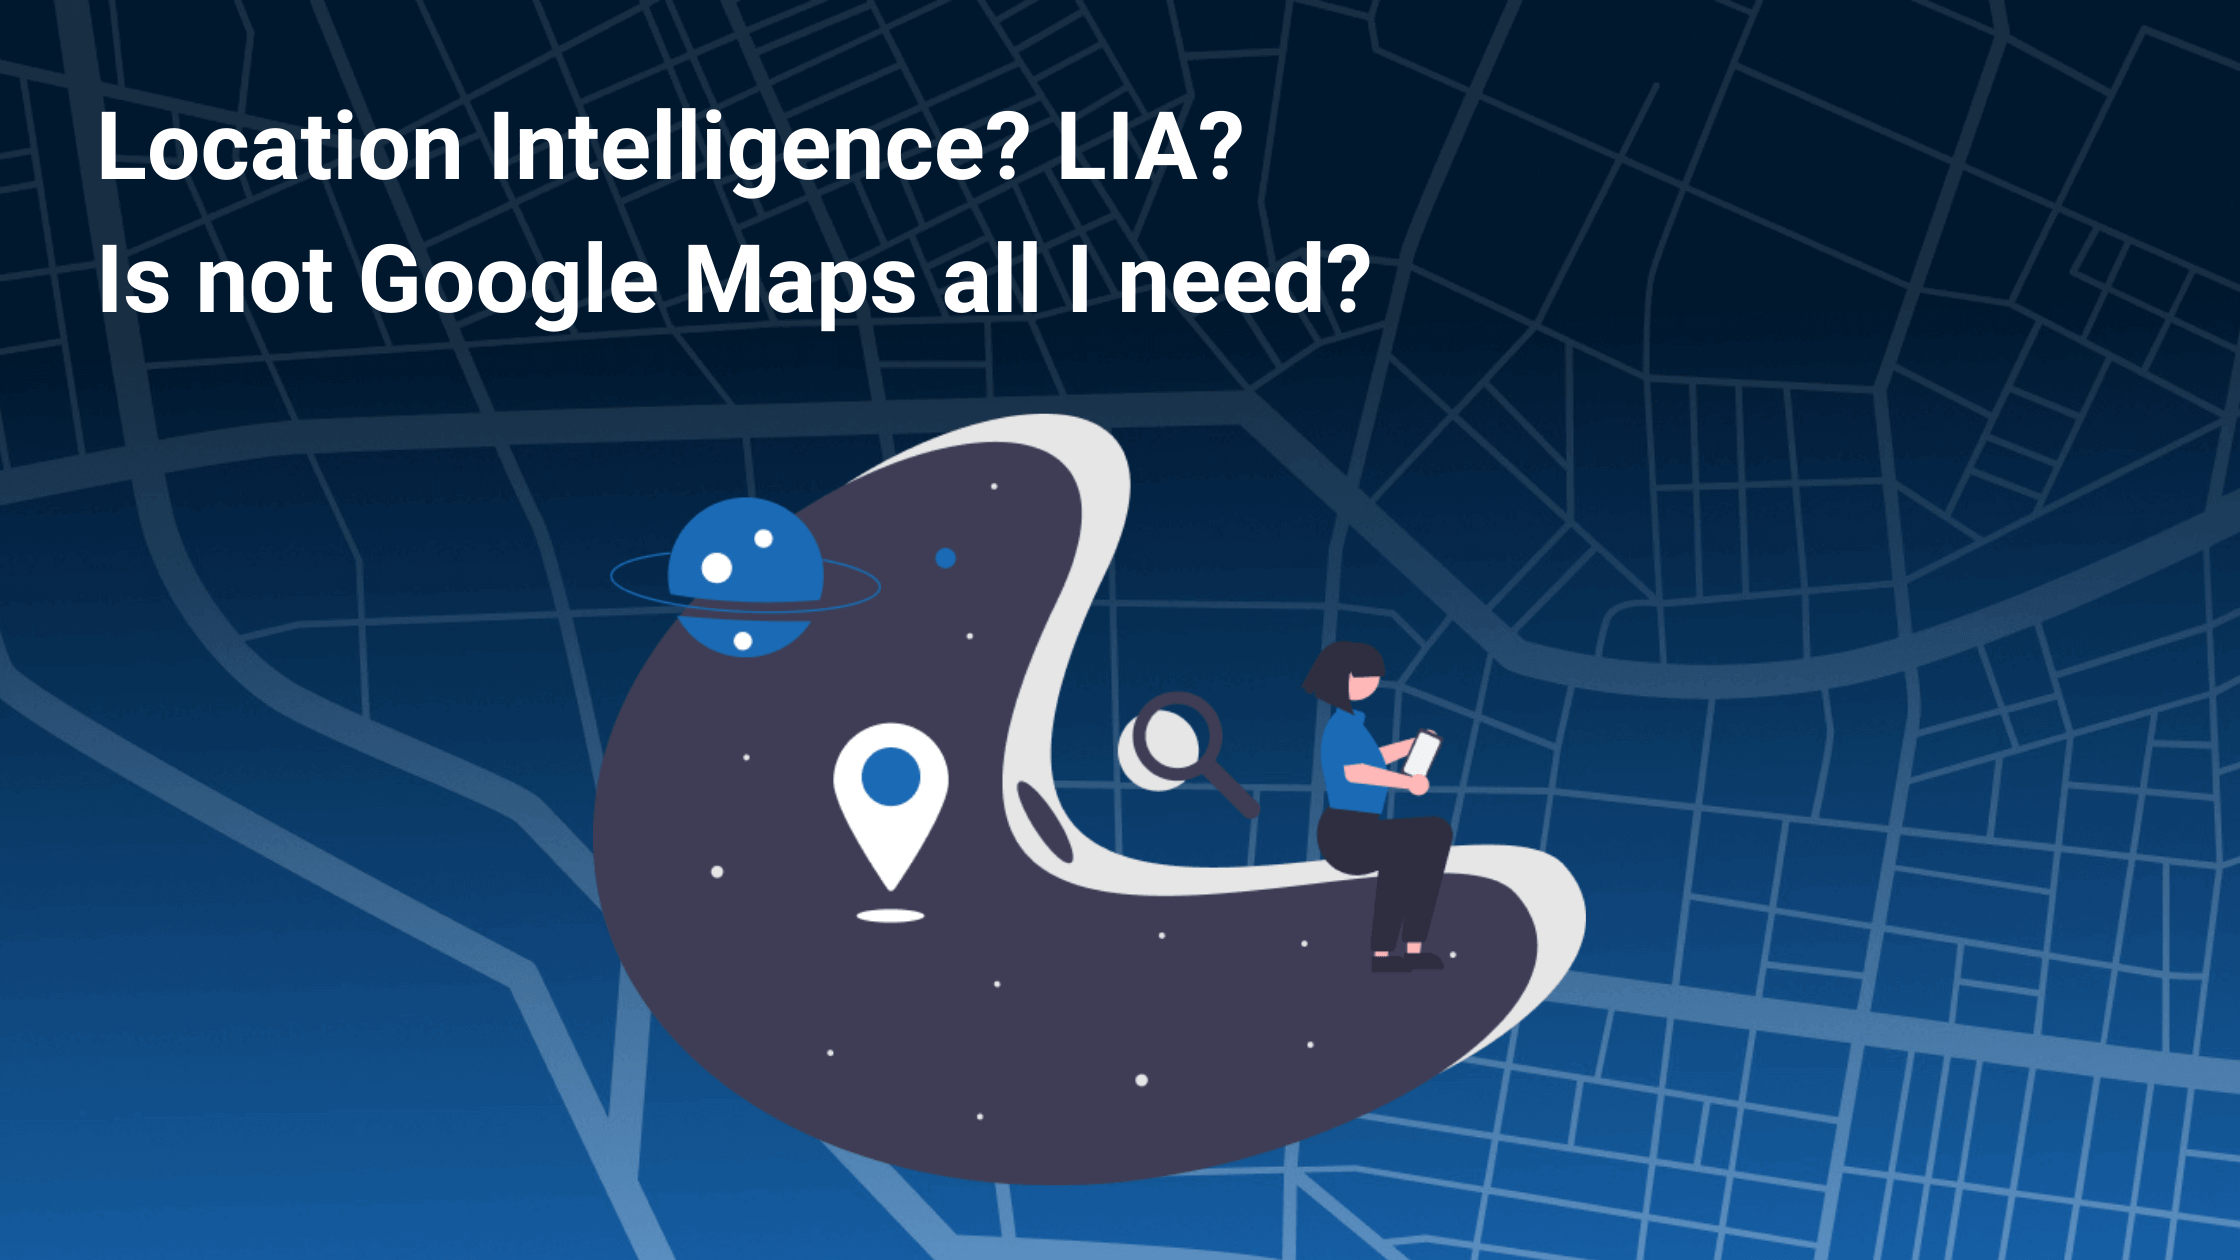 Location Intelligence? LIA? Is not Google Maps all I need?